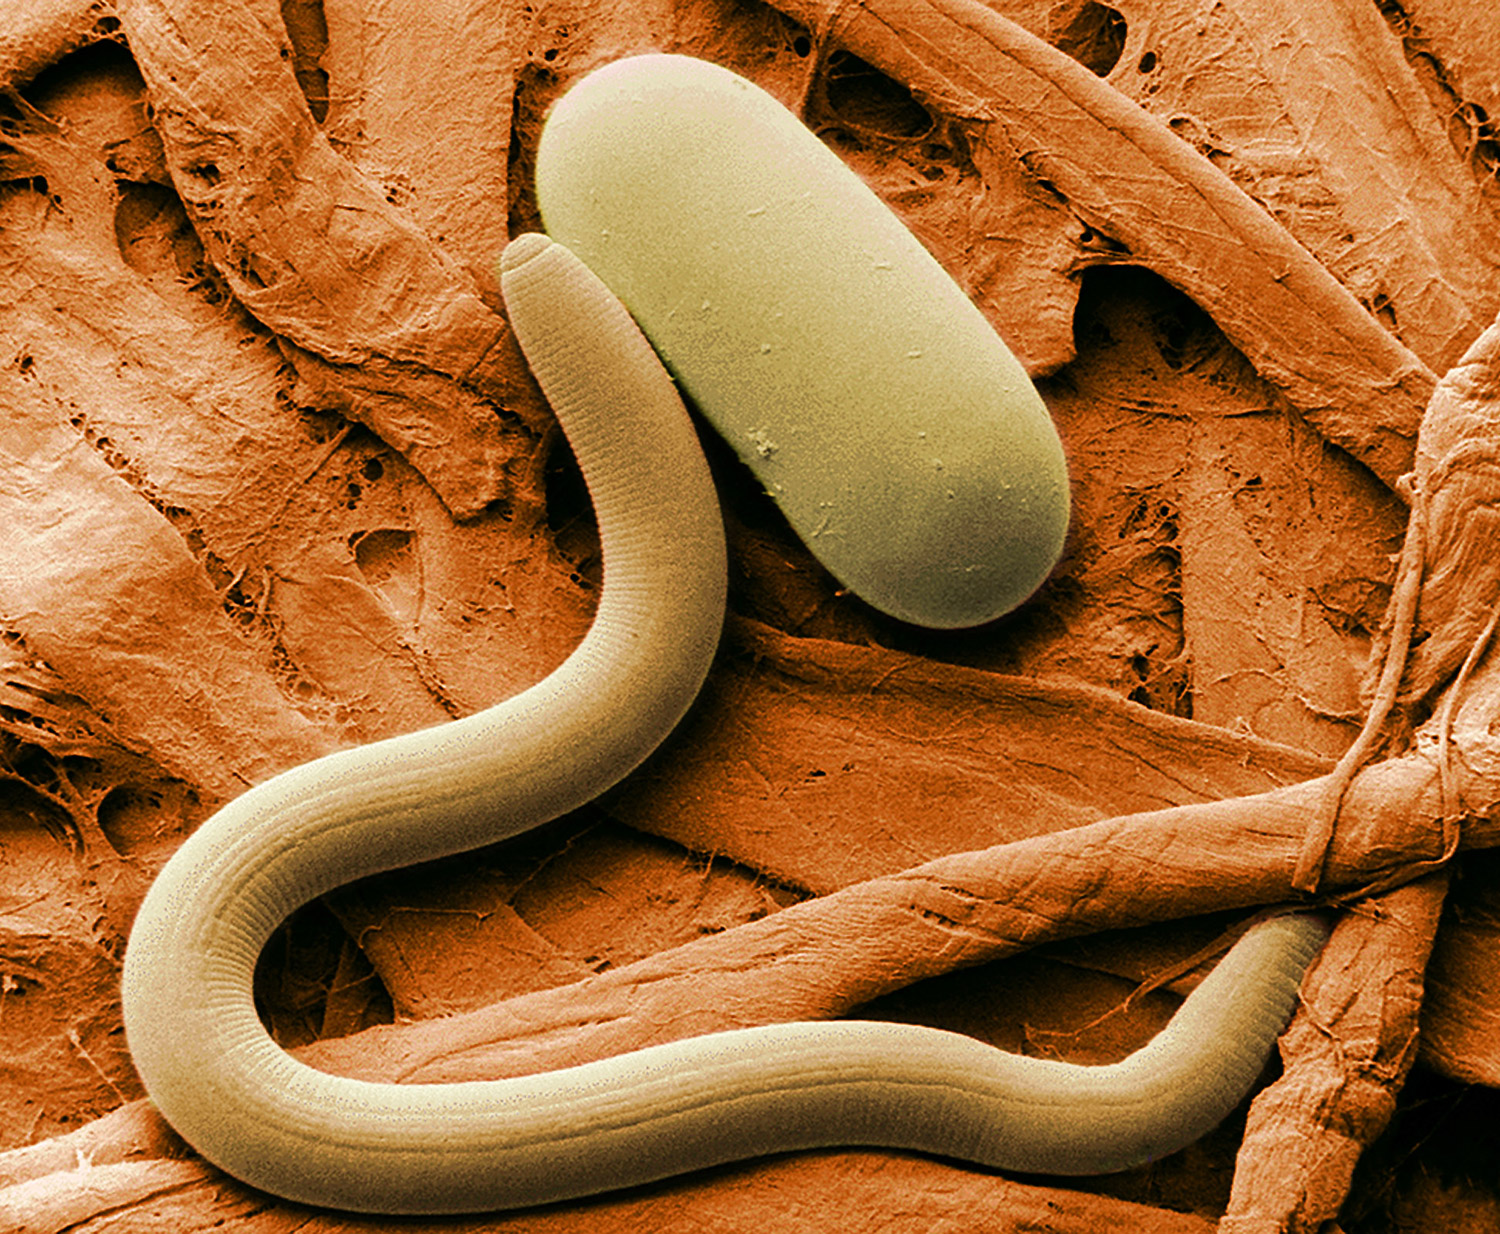 Fullsize Of Worm Under Microscope